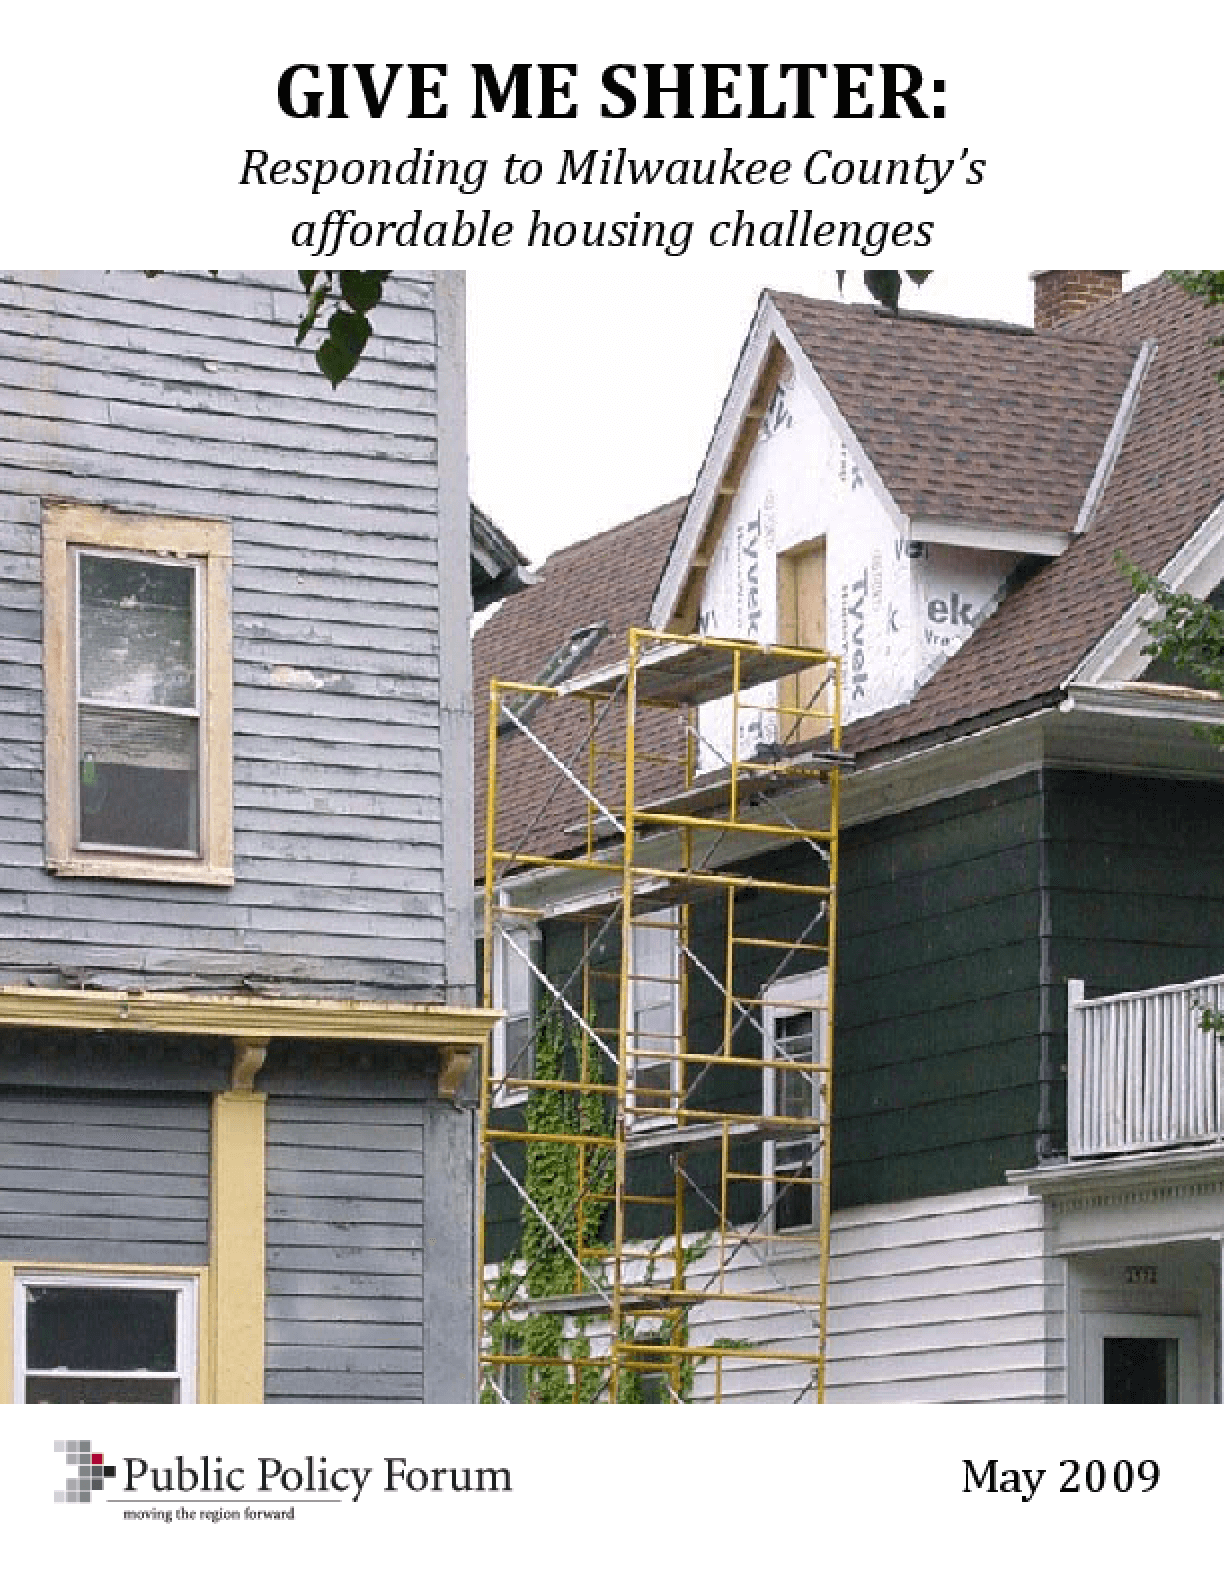 Give Me Shelter: Responding to Milwaukee County's affordable housing challenges